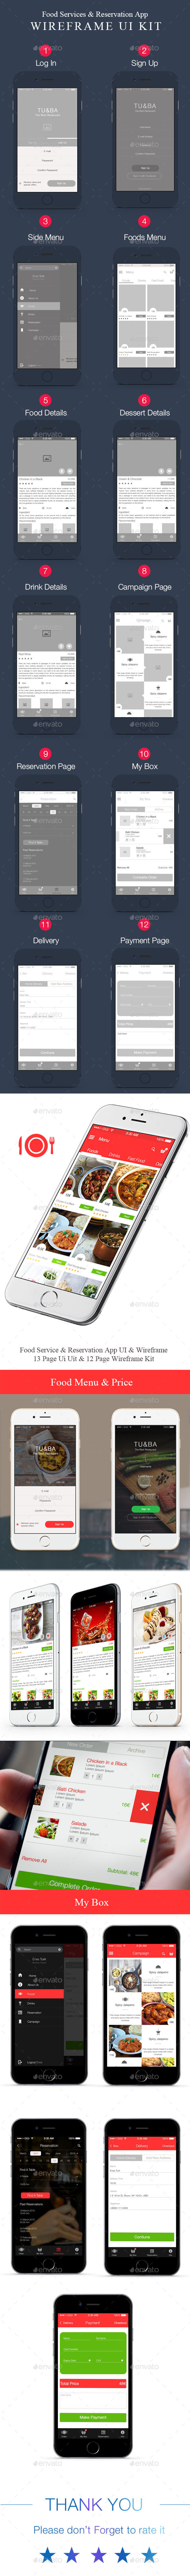 Food App UI   Wireframe Kit by agencybd   GraphicRiver Food App UI   Wireframe Kit   User Interfaces Web Elements